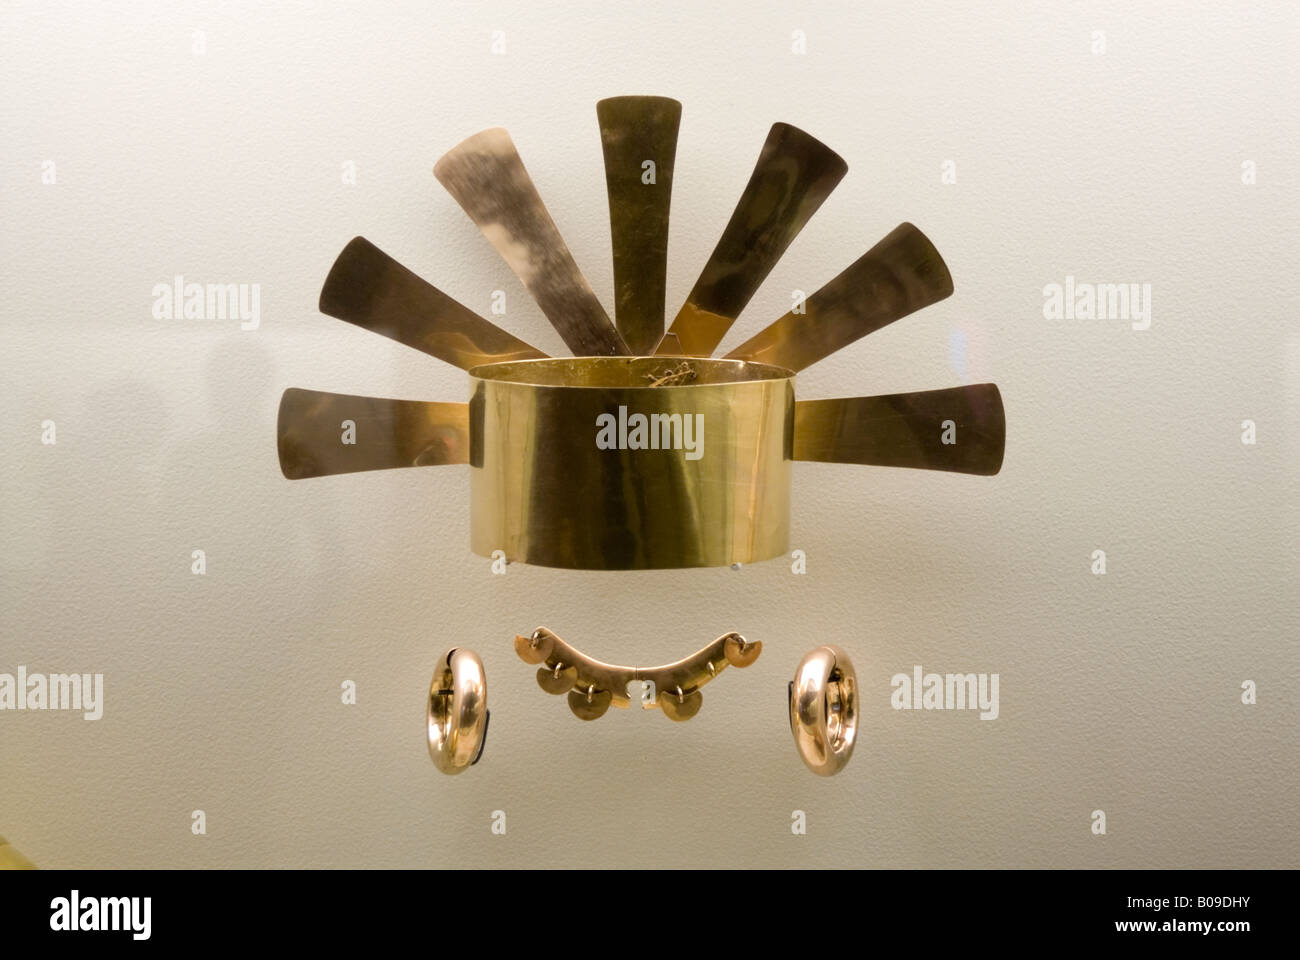 Pre Columbian gold artefact in the Museo del Oro, Bogota, Colombia - Stock Image